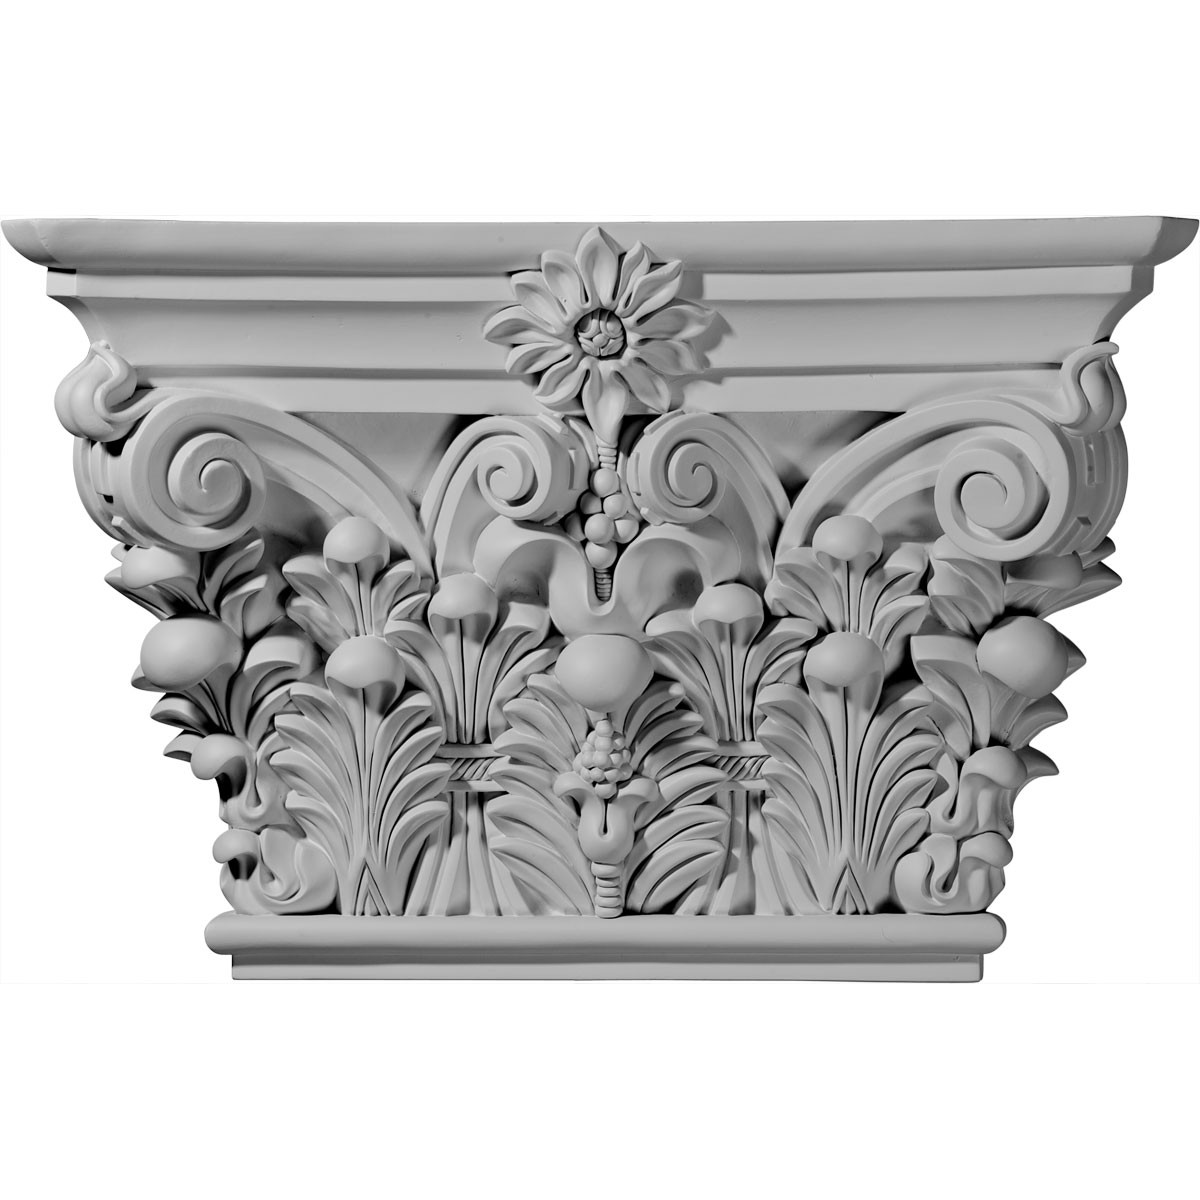 "EM-CAP24X15X06AC - 24 1/8""W x 15 7/8""H x 6 3/4""D Acanthus Leaf Capital (Fits Pilasters up to 15 5/8""W x 1 5/8""D)"